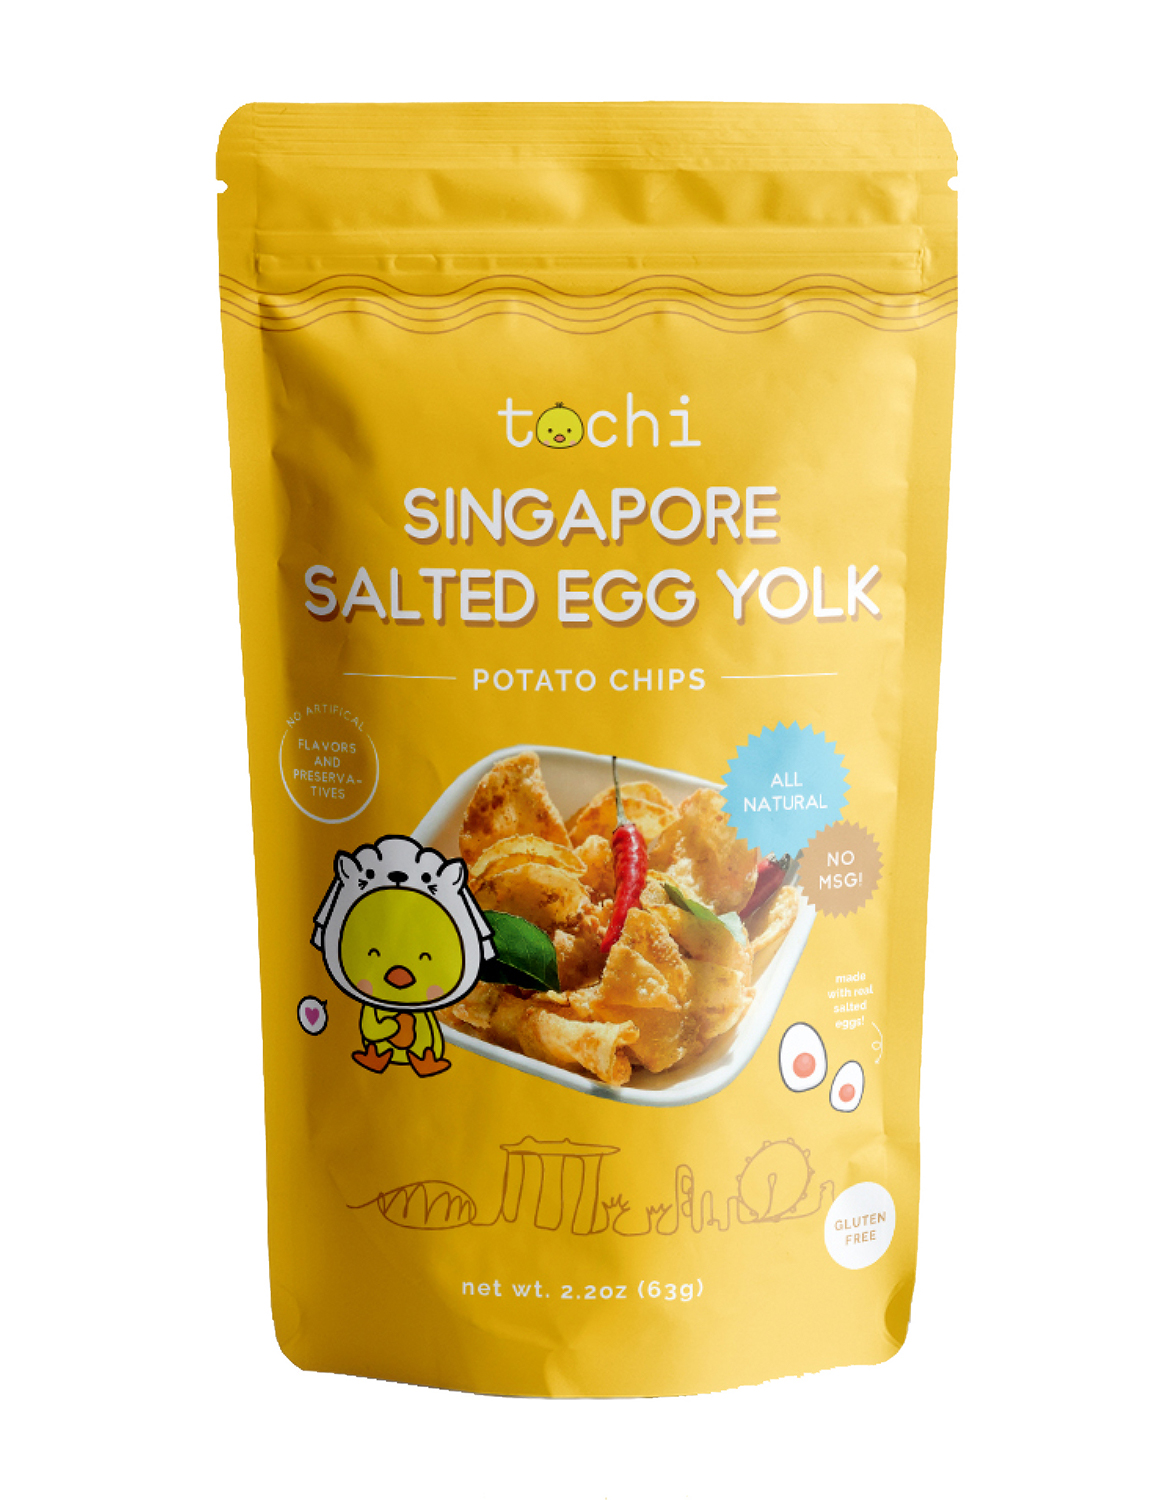 Singapore Spicy Salted Egg Yolk Potato Chips